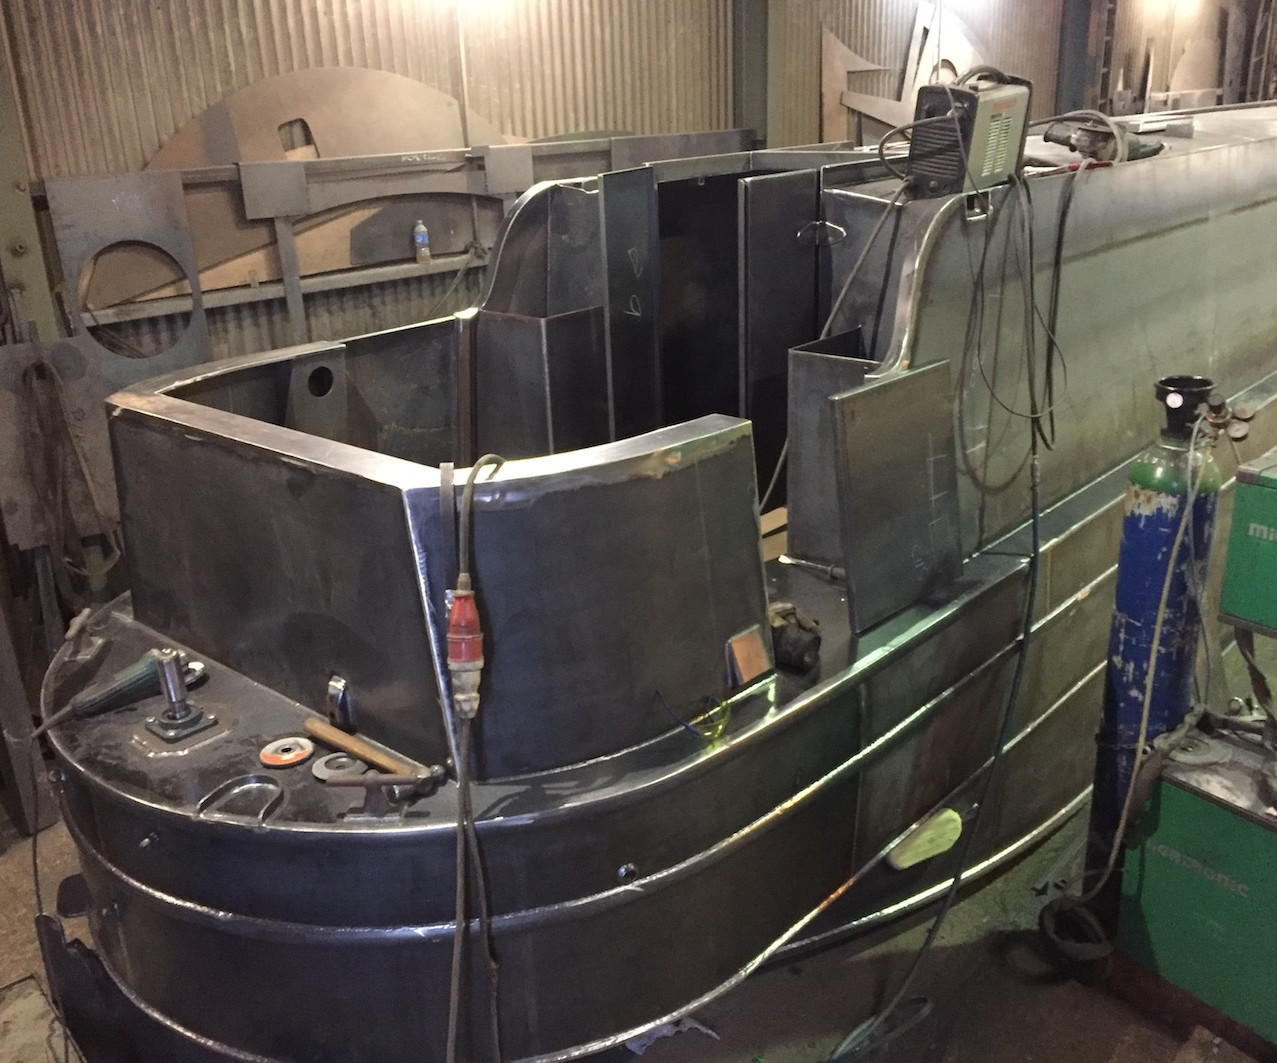 Enclosed Stern Narrowboat